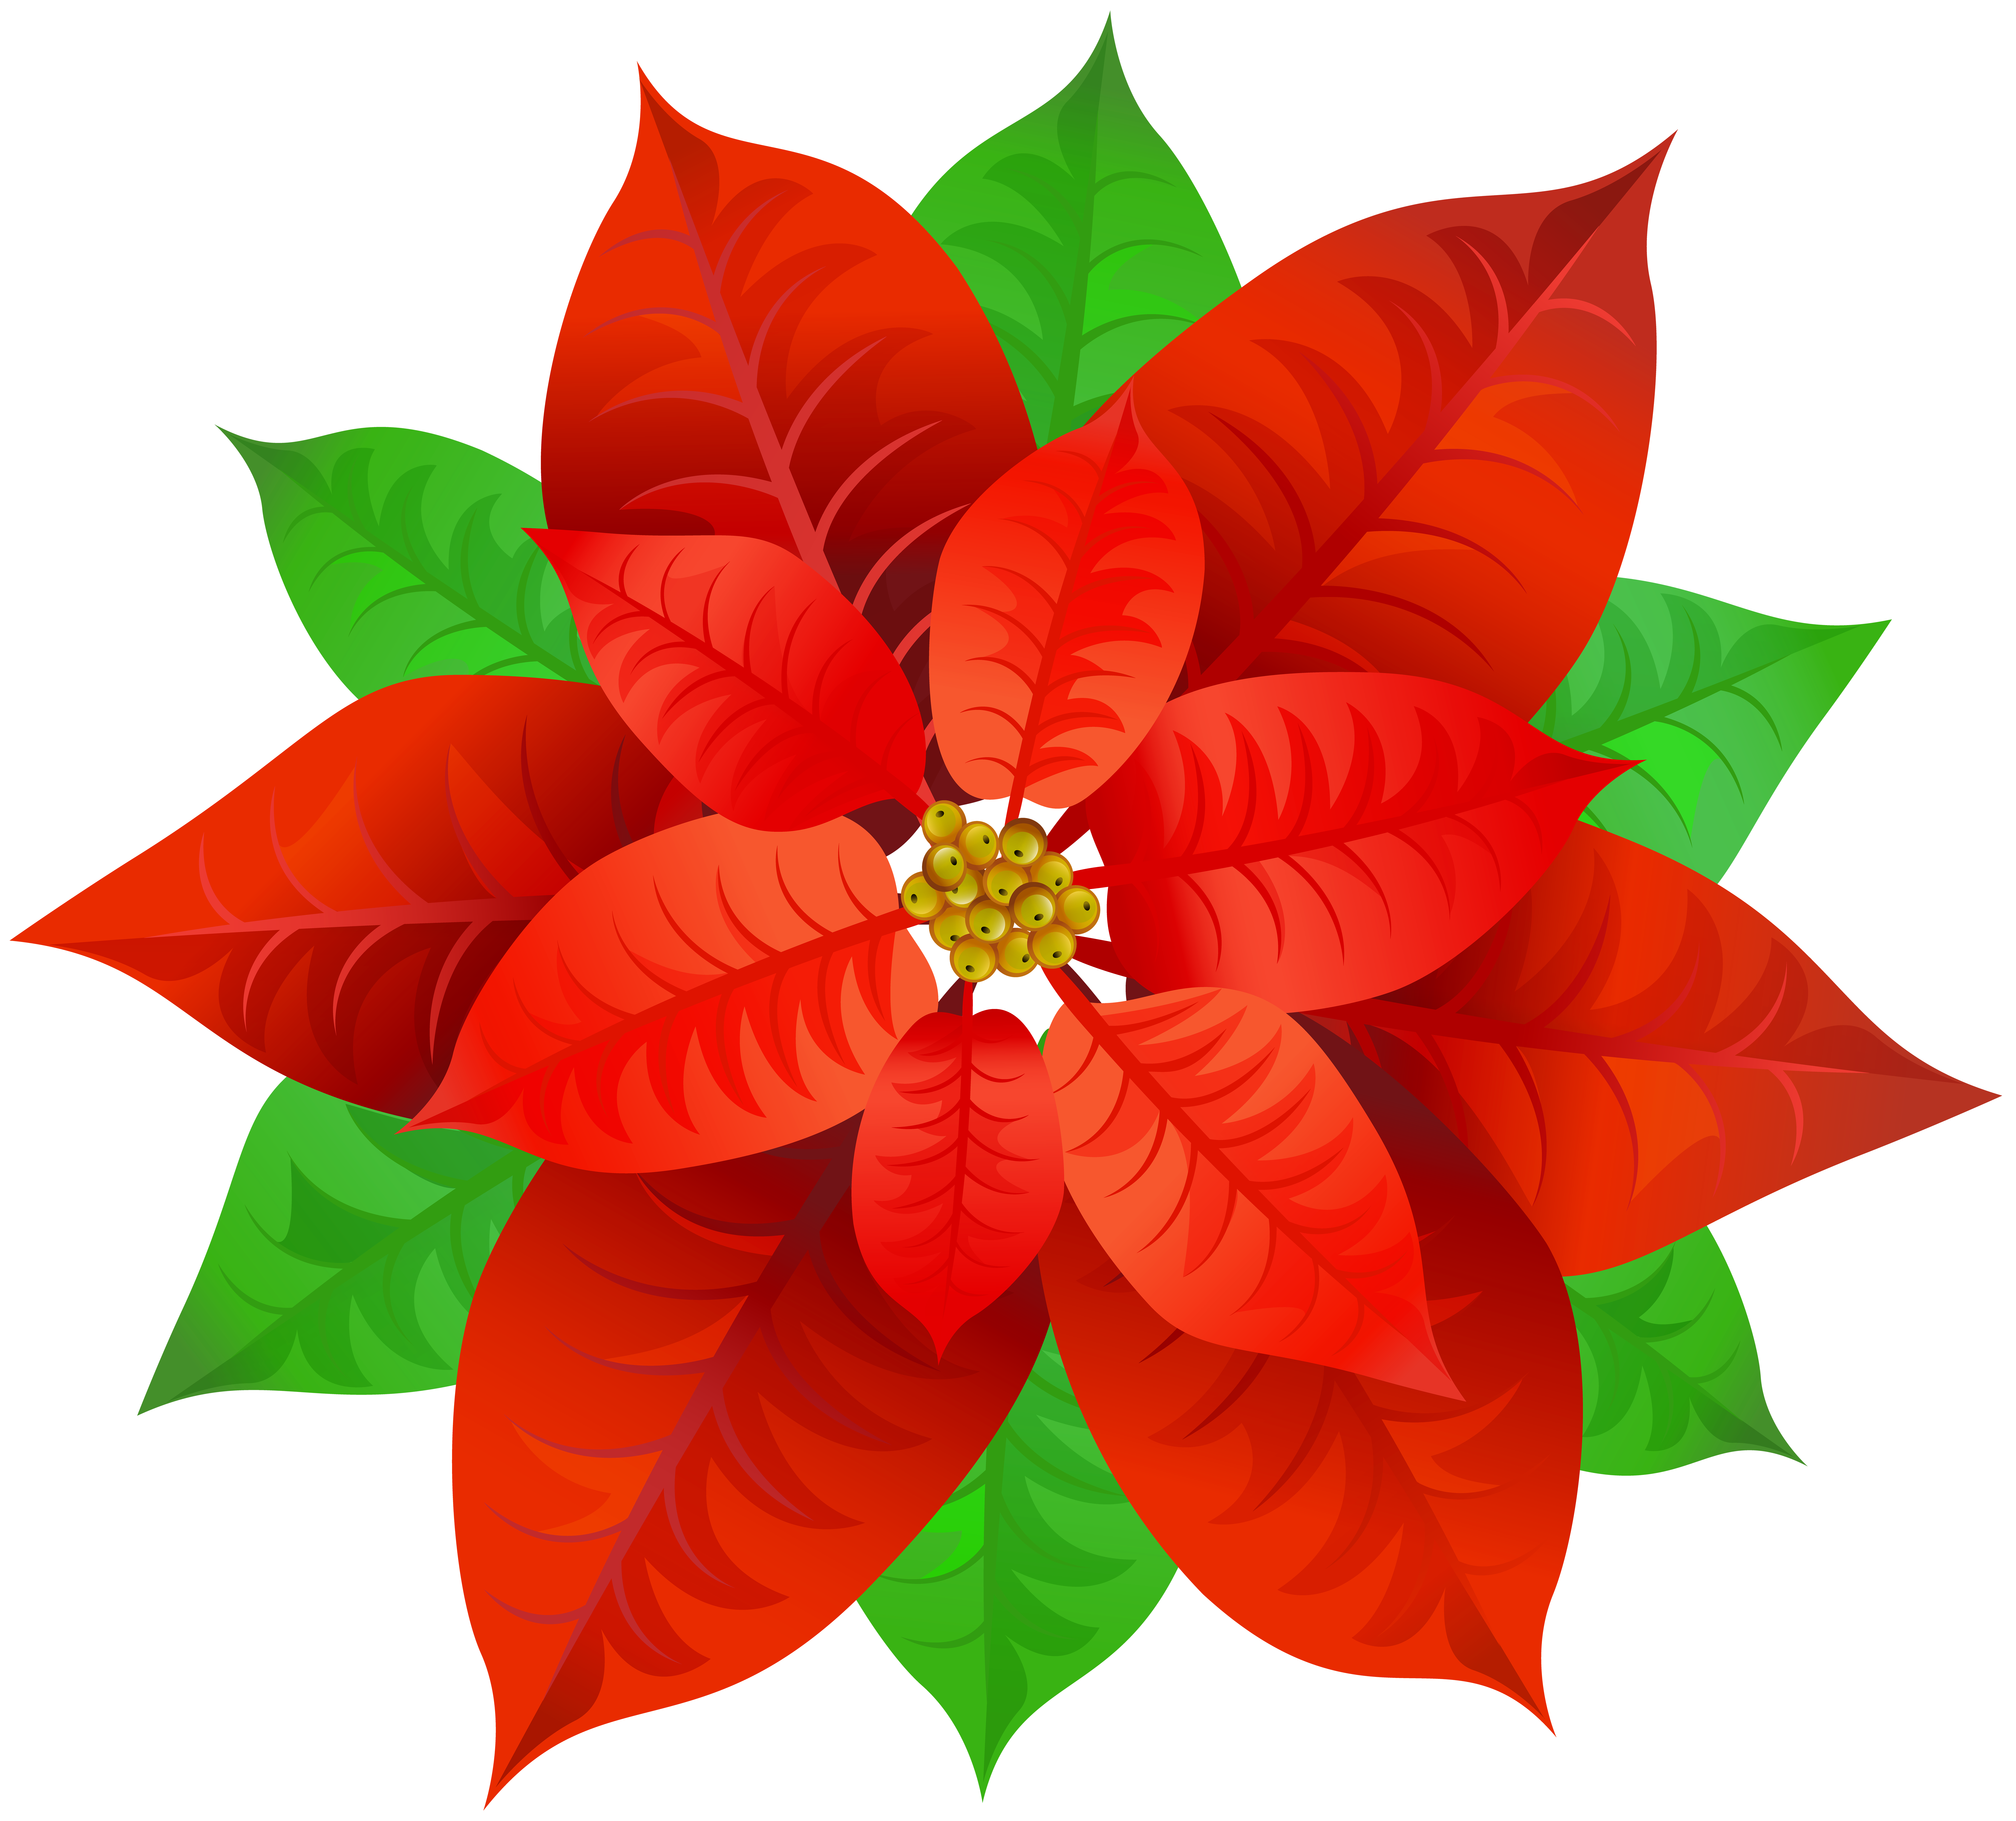 Poinsettia Transparent PNG Image.